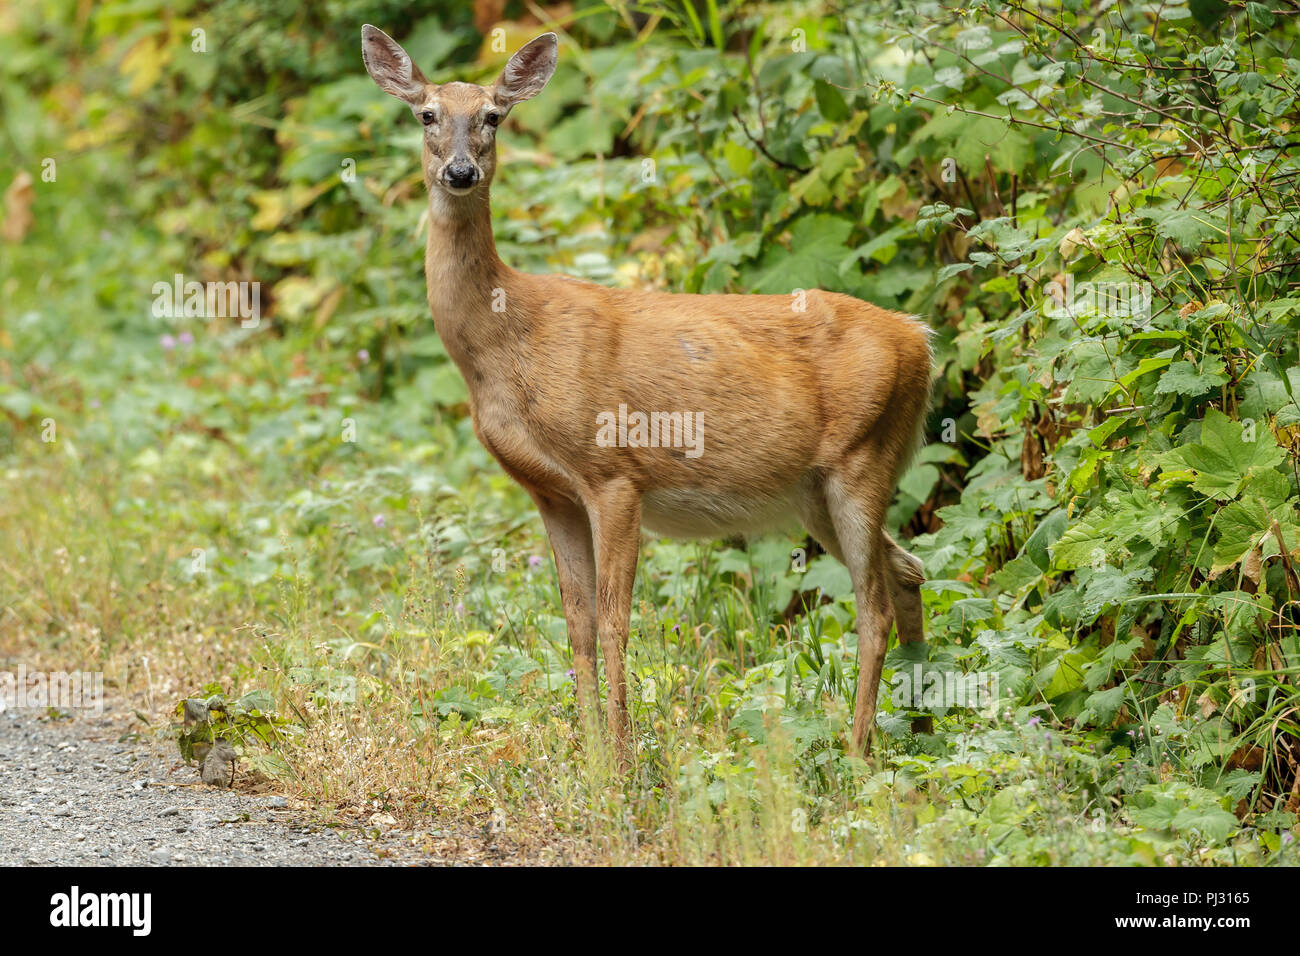 A white tailed deer stands by thick vegetation near Hauser, Idaho. - Stock Image